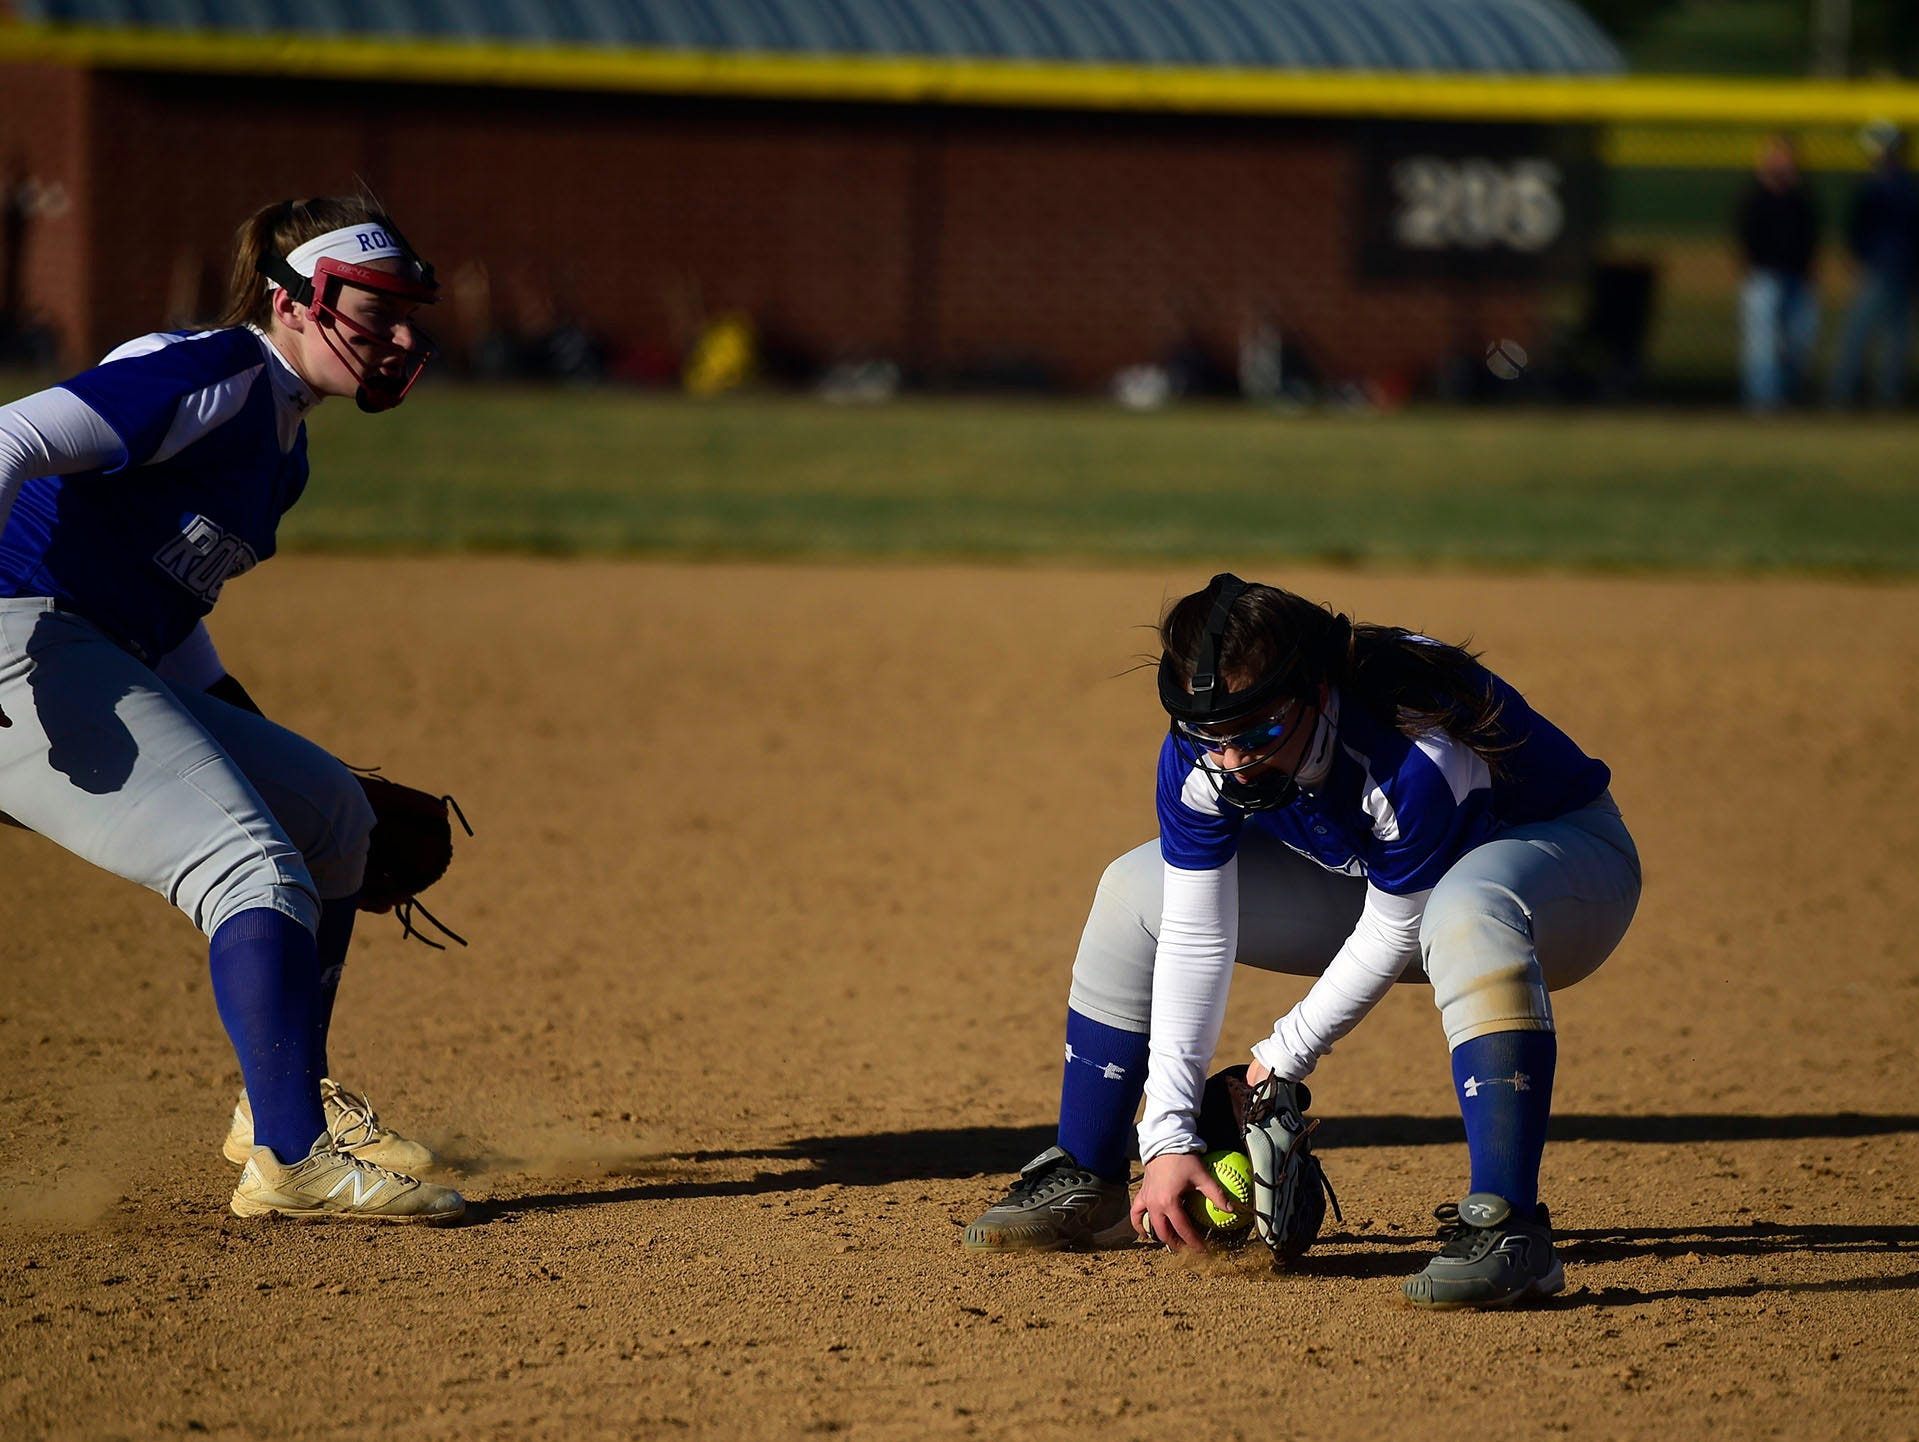 Spring Grove pitcher Sara Jones scoops up the ball in front of third baseman Hannah Gartrell Wednesday, April 3, 2019.